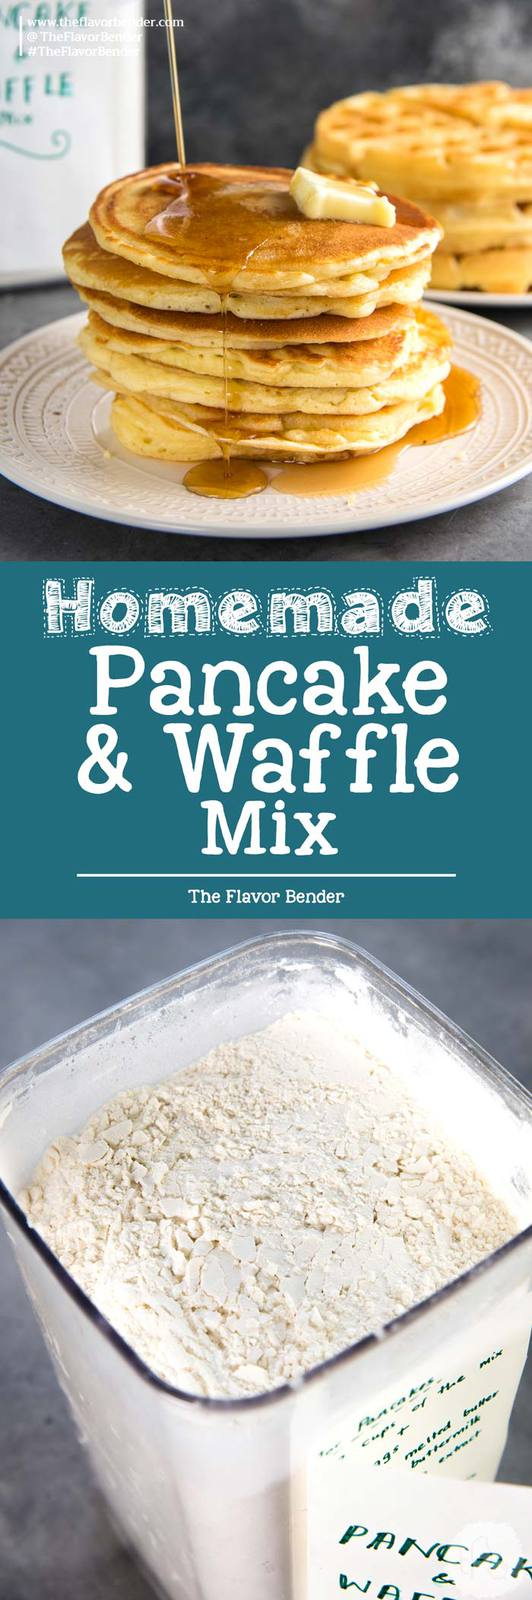 Homemade pancake mix or homemade waffle mix the flavor bender homemade pancake mix waffle mix the best pancake or waffle mix from scratch that ccuart Choice Image